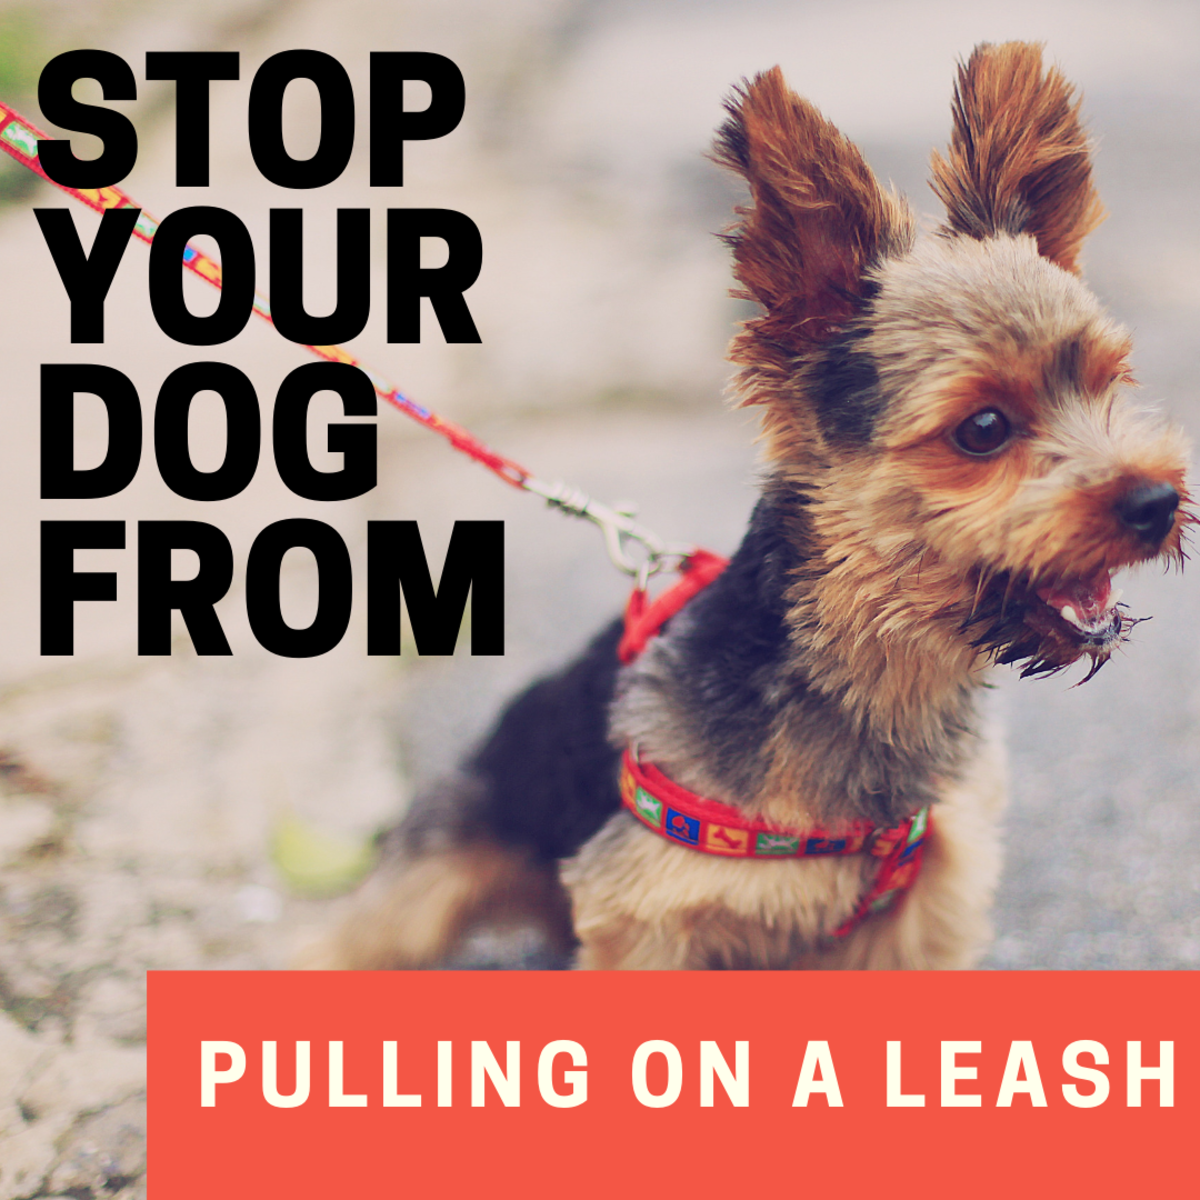 Leash-Training Your Dog